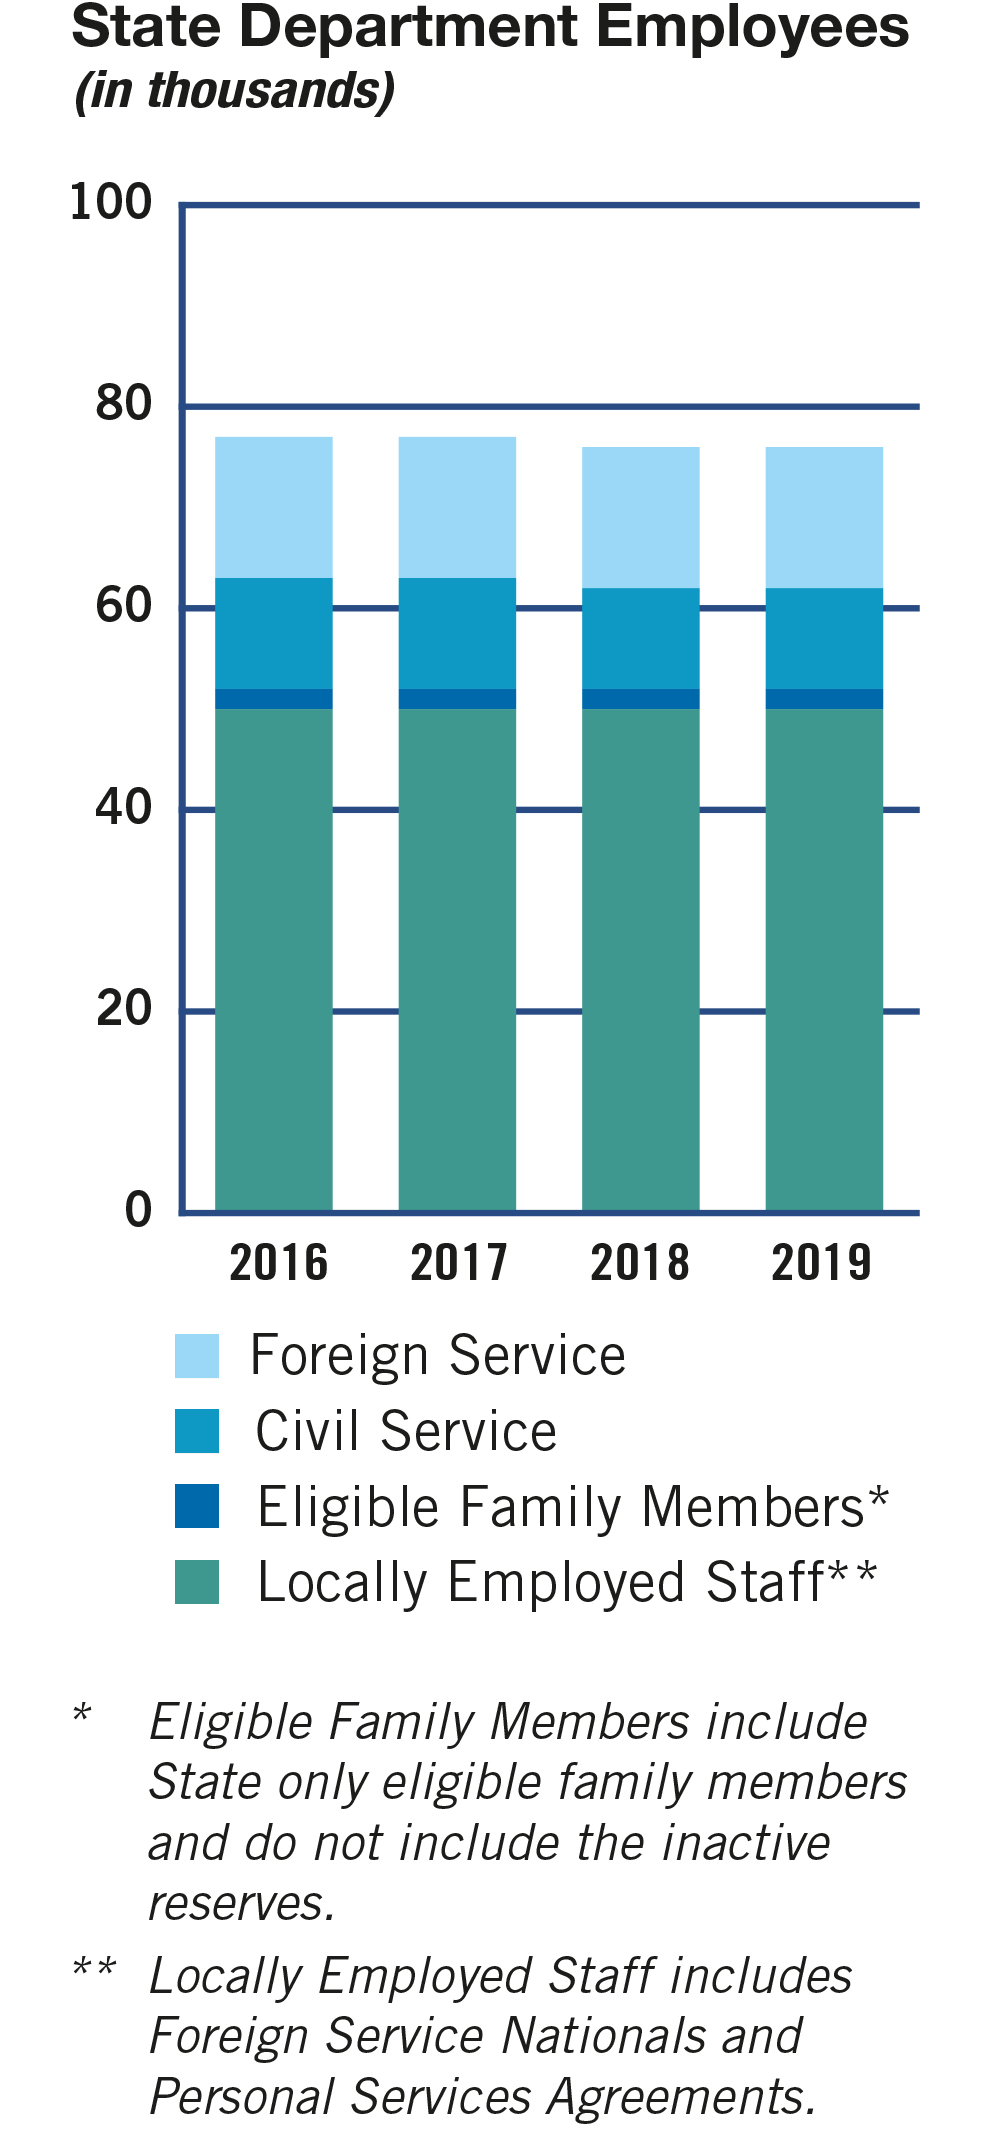 Bar chart of State employees for 2016-2019 broken down by Foreign Service, Civil Service, Eligible Family Members (see Note 1) and Locally Employed Staff (see Note 2). In thousands: FY 2016: Foreign Service: 14; Civil Service: 11; Eligible Family Members: 2; Locally Employed Staff: 50. FY 2017: Foreign Service: 14; Civil Service: 11; Eligible Family Members: 2; Locally Employed Staff: 50. FY 2018: Foreign Service: 14; Civil Service: 10; Eligible Family Members: 2; Locally Employed Staff: 50. FY 2019: Foreign Service: 14; Civil Service: 10; Eligible Family Members: 2; Locally Employed Staff: 50. Notes: 1. Eligible Family Members include State only eligible family members and do not include the inactive reserves. 2. Locally Employed Staff includes Foreign Service Nationals and Personal Services Agreements.